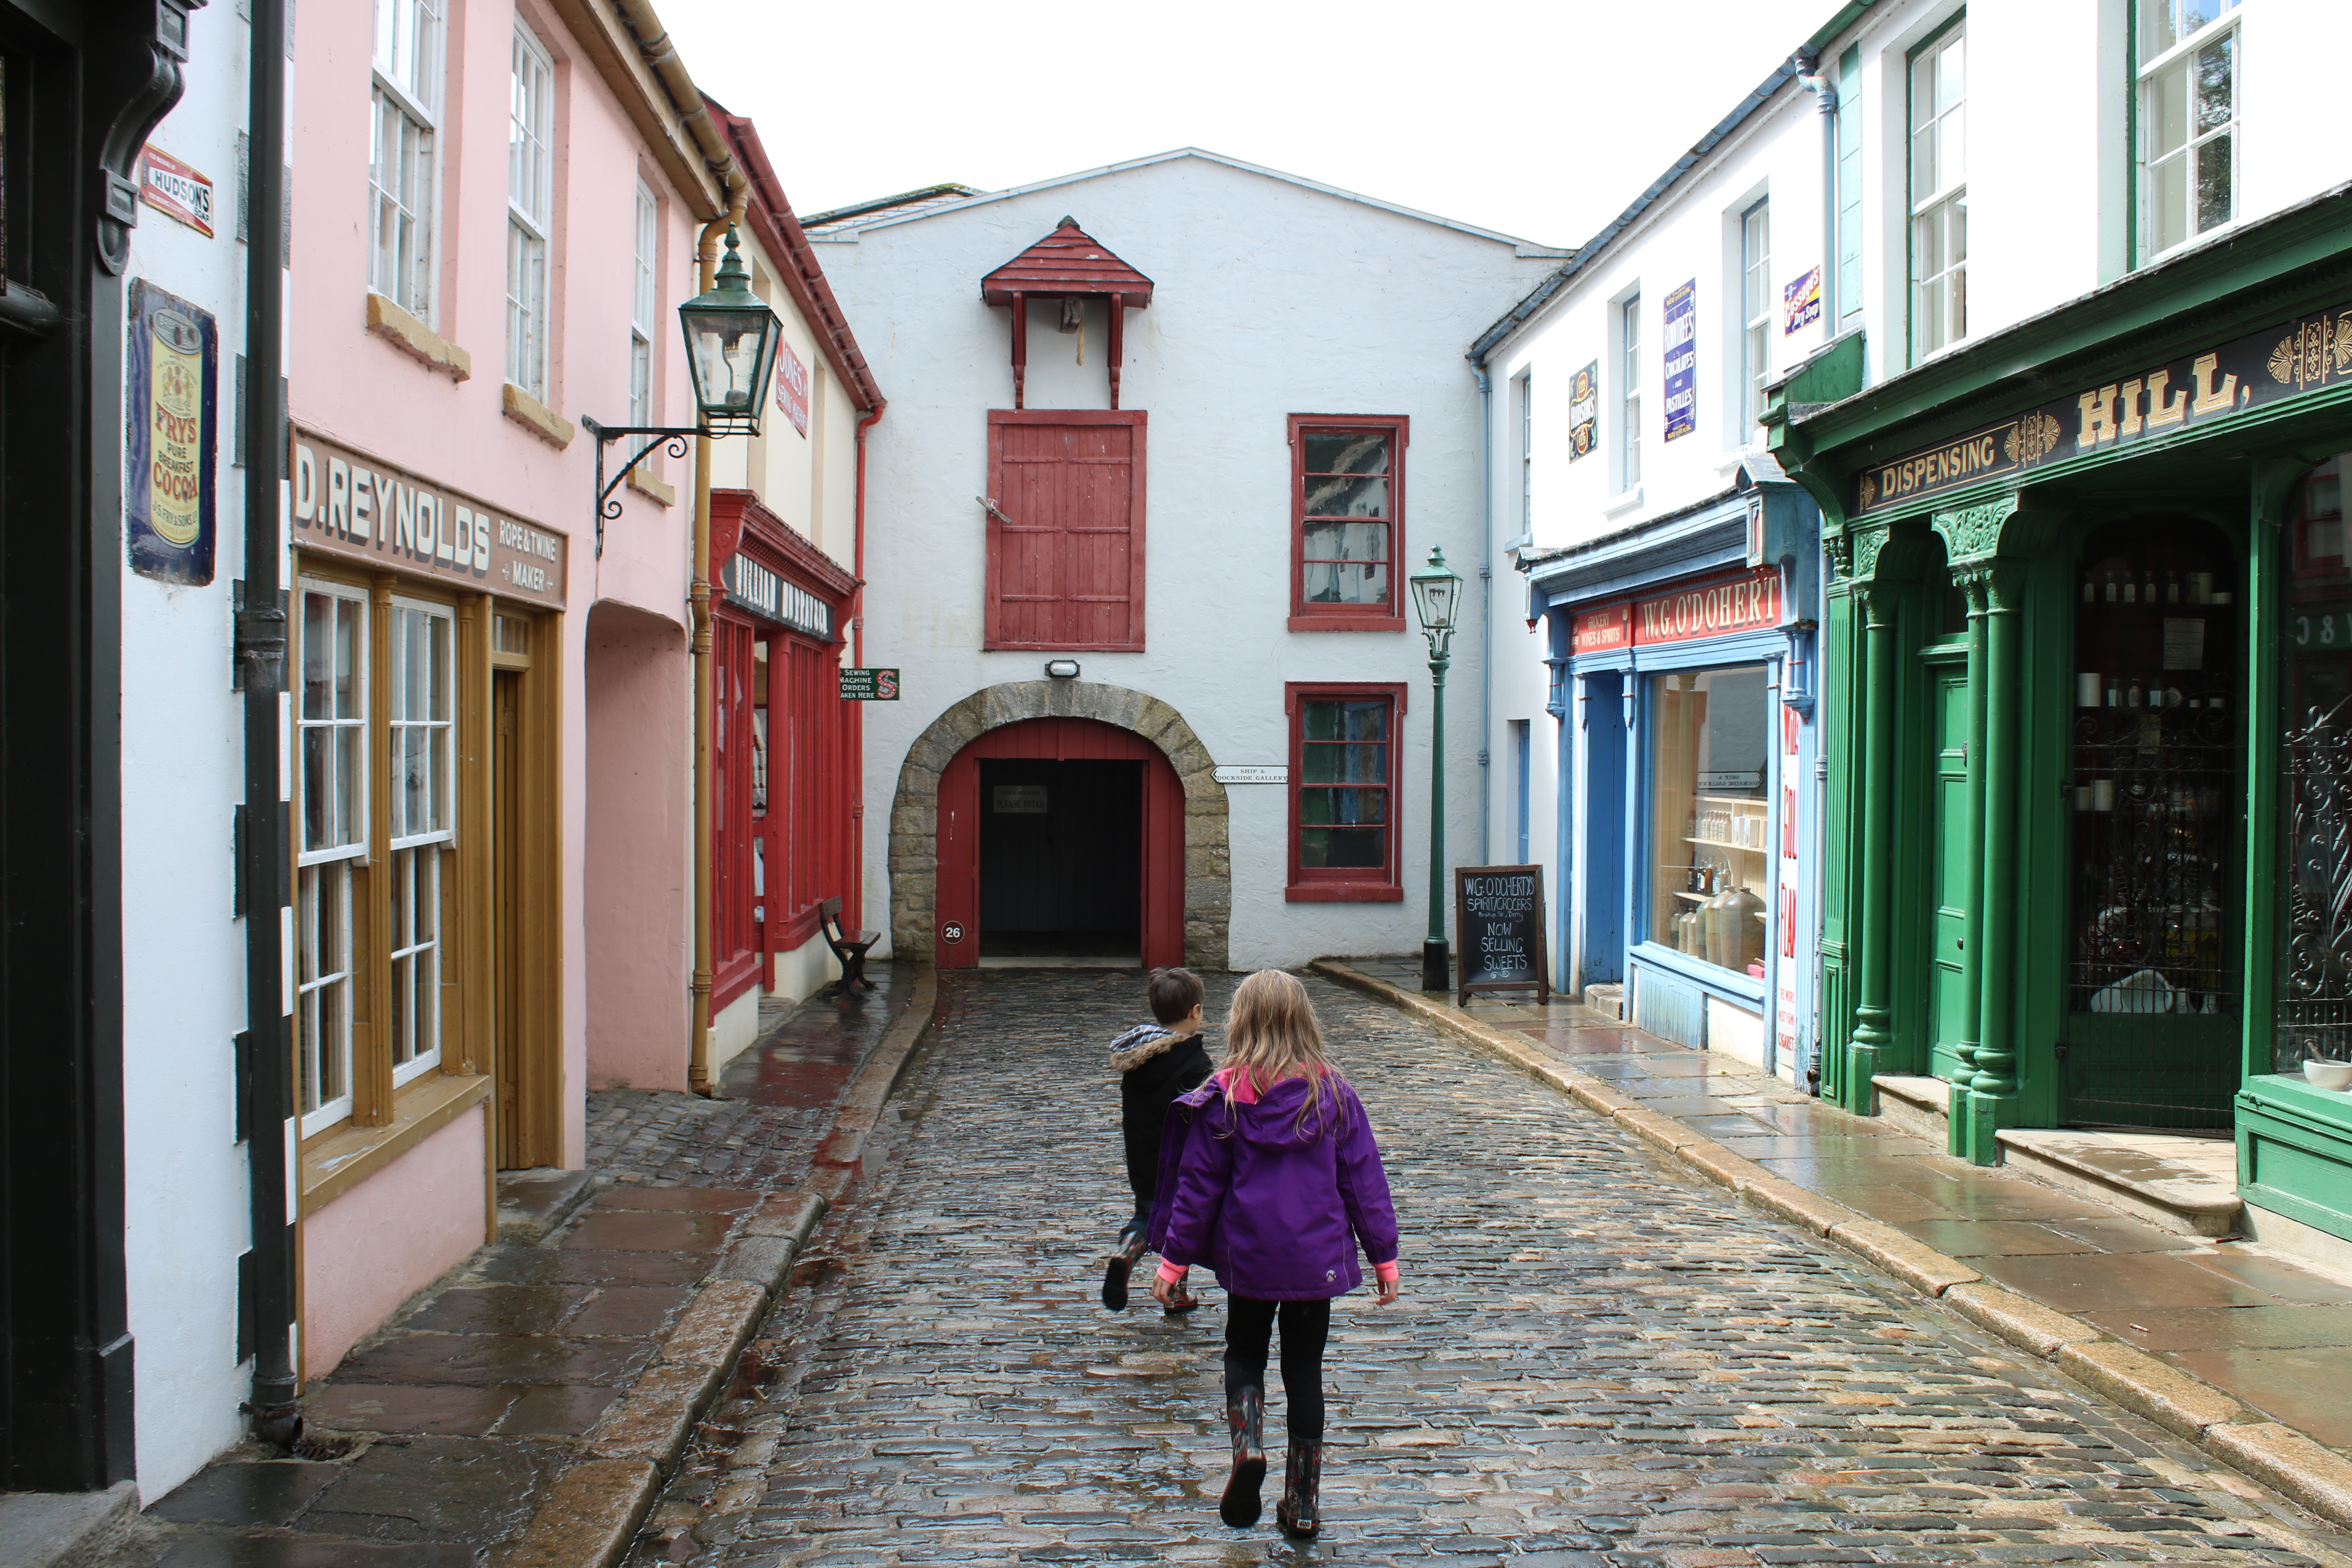 cobbled street with shops either side